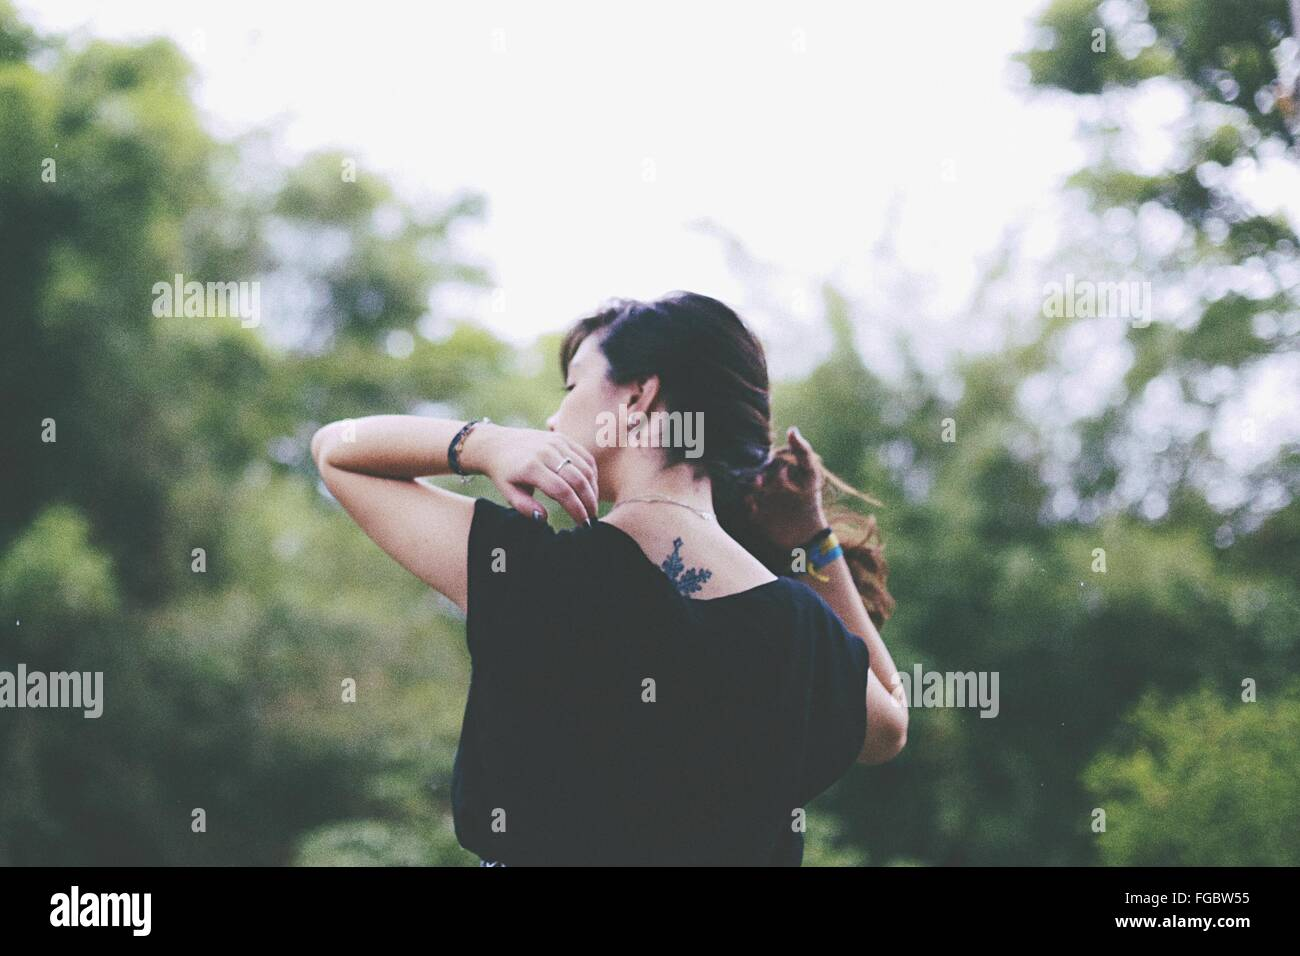 Rear View Of Woman With Hand In Hair Standing On Field - Stock Image